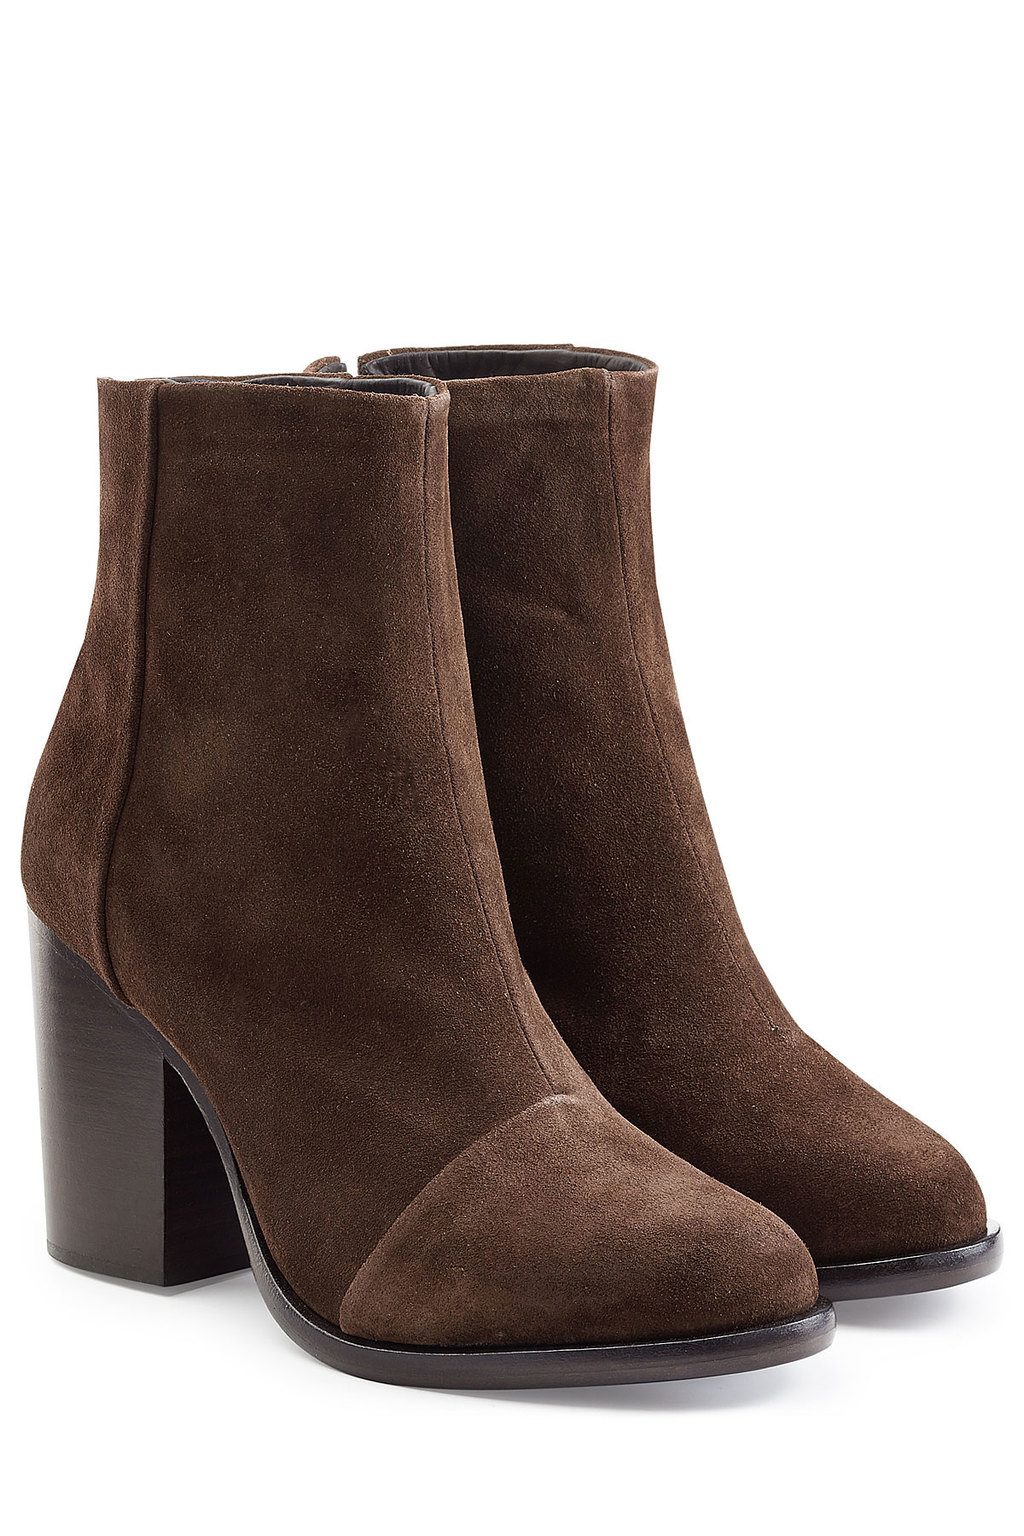 Ashby Suede Ankle Boots - predominant colour: chocolate brown; material: suede; heel height: high; heel: block; toe: round toe; boot length: ankle boot; style: standard; finish: plain; pattern: plain; occasions: creative work; season: s/s 2016; wardrobe: highlight